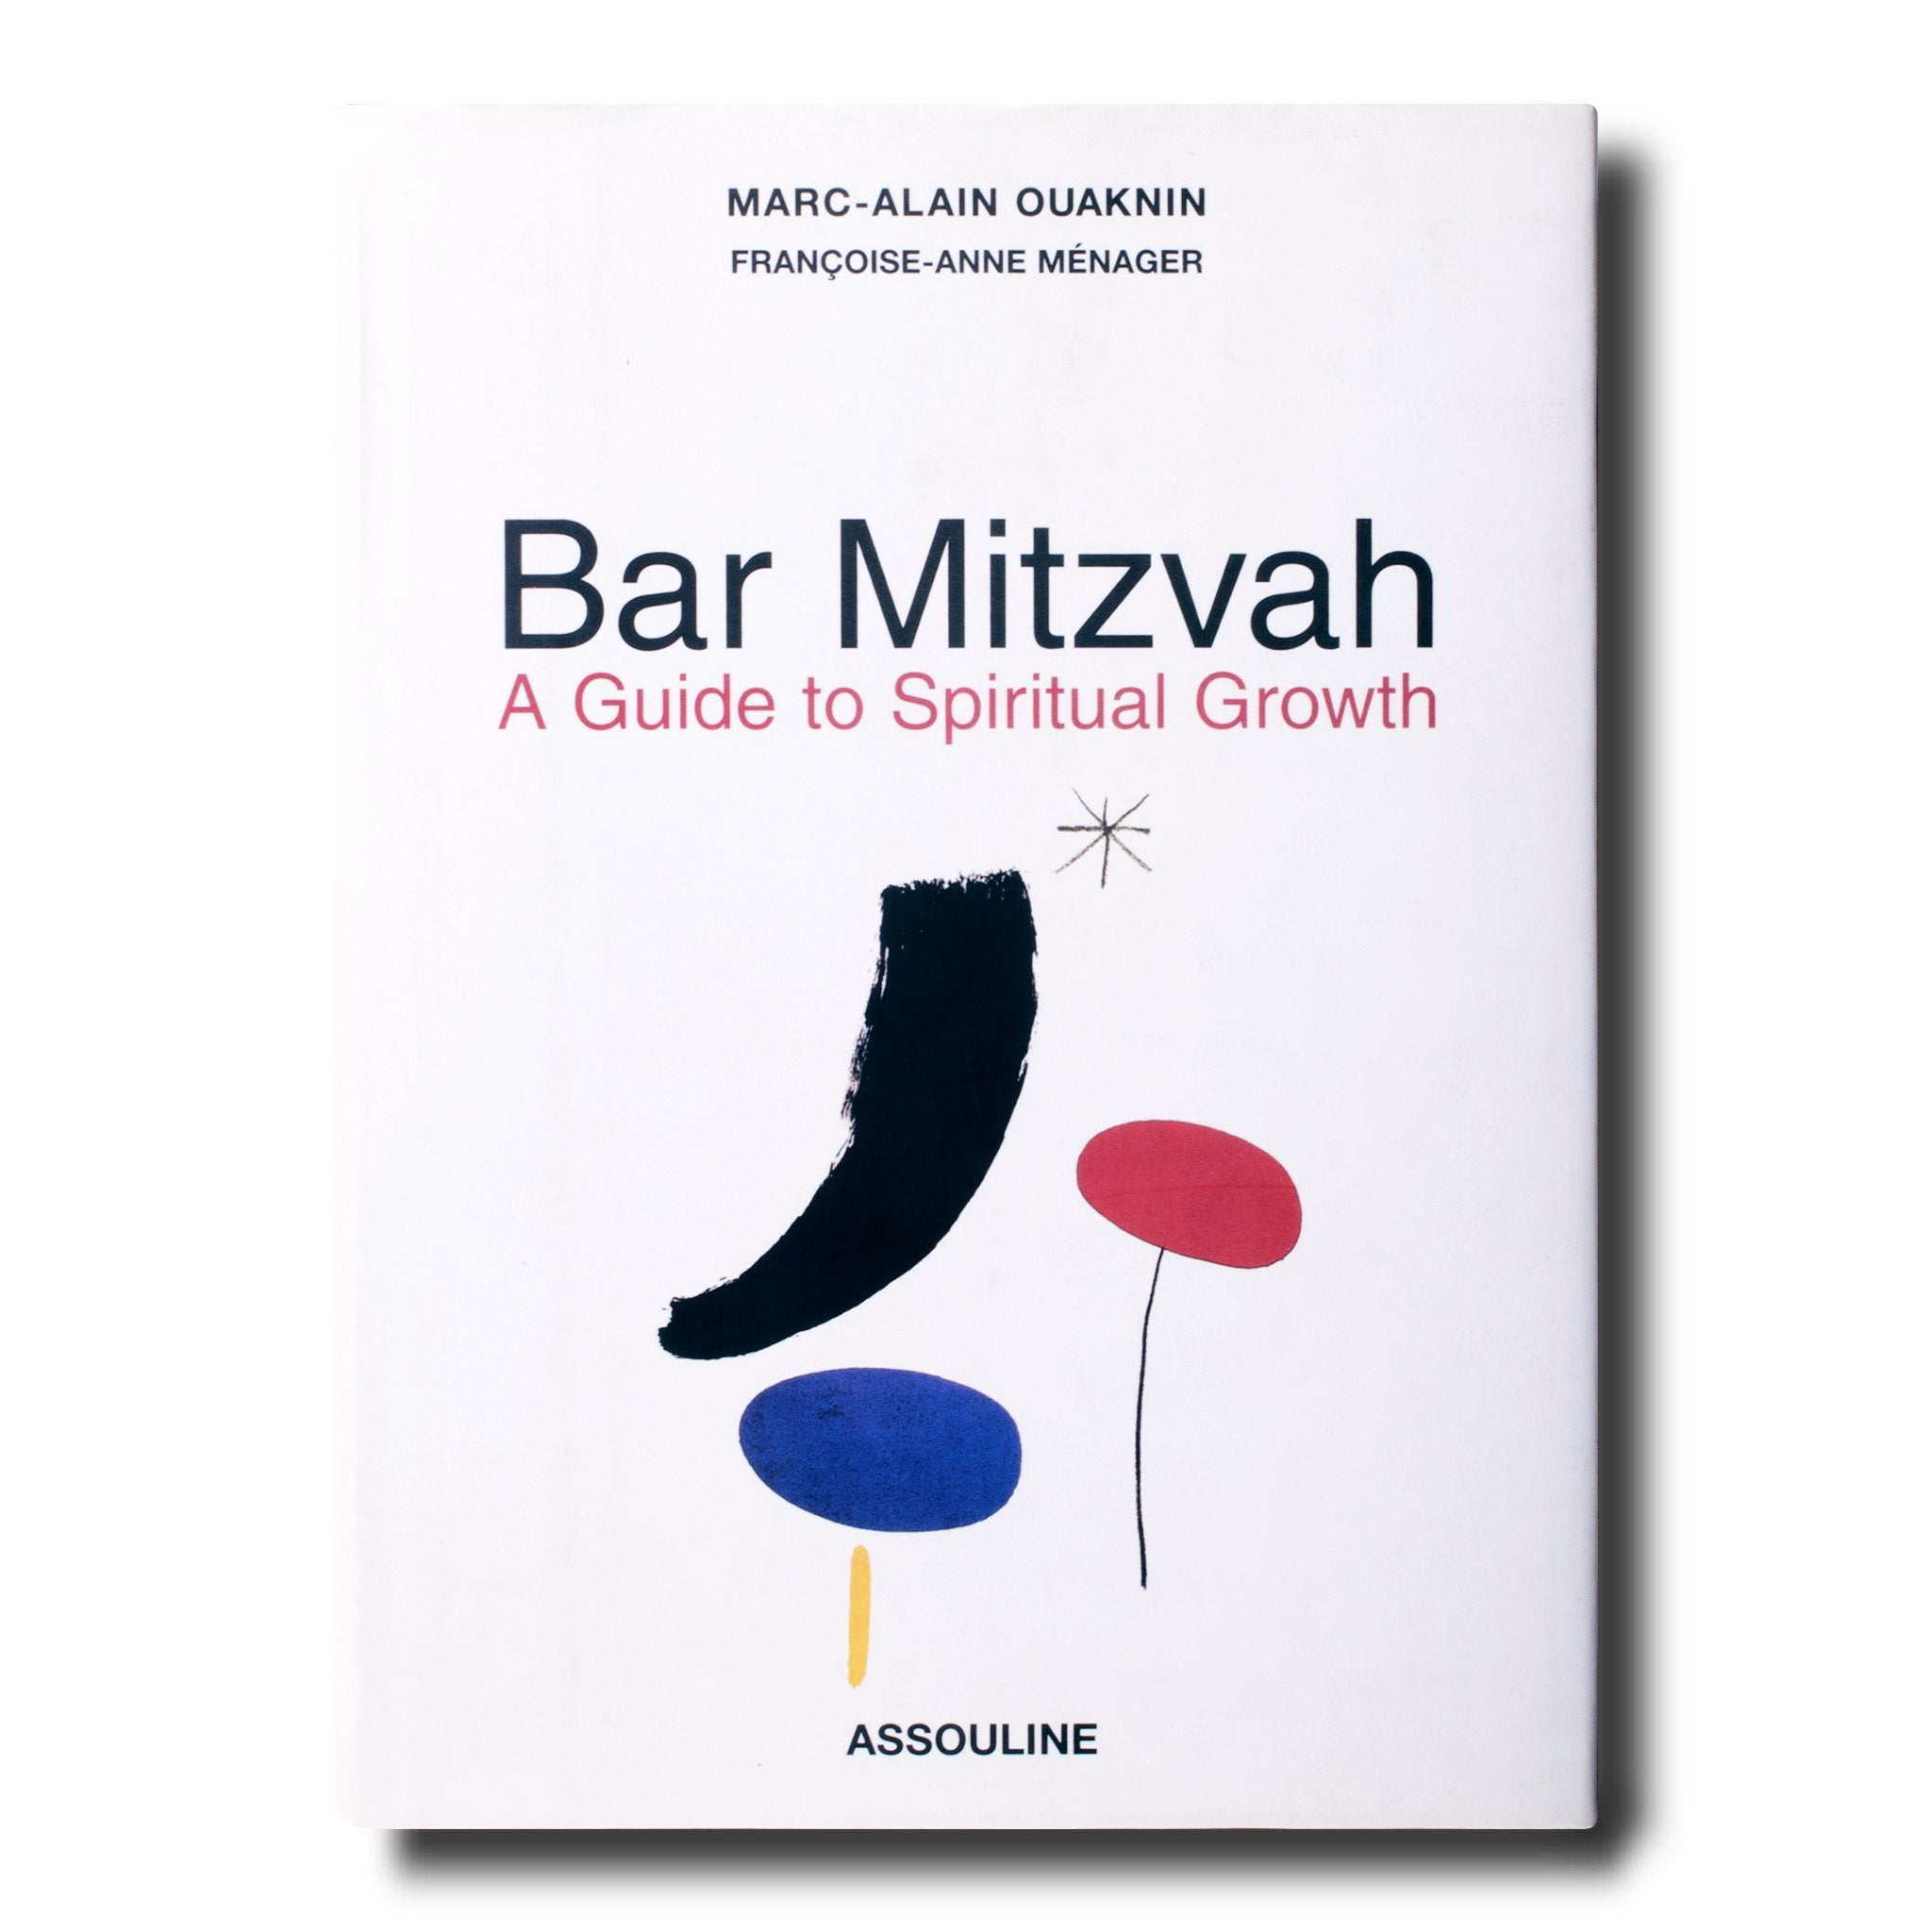 Bar mitzvah a guide to spiritual growth book assouline assouline bar mitzvah a guide to spiritual growth assouline biocorpaavc Gallery